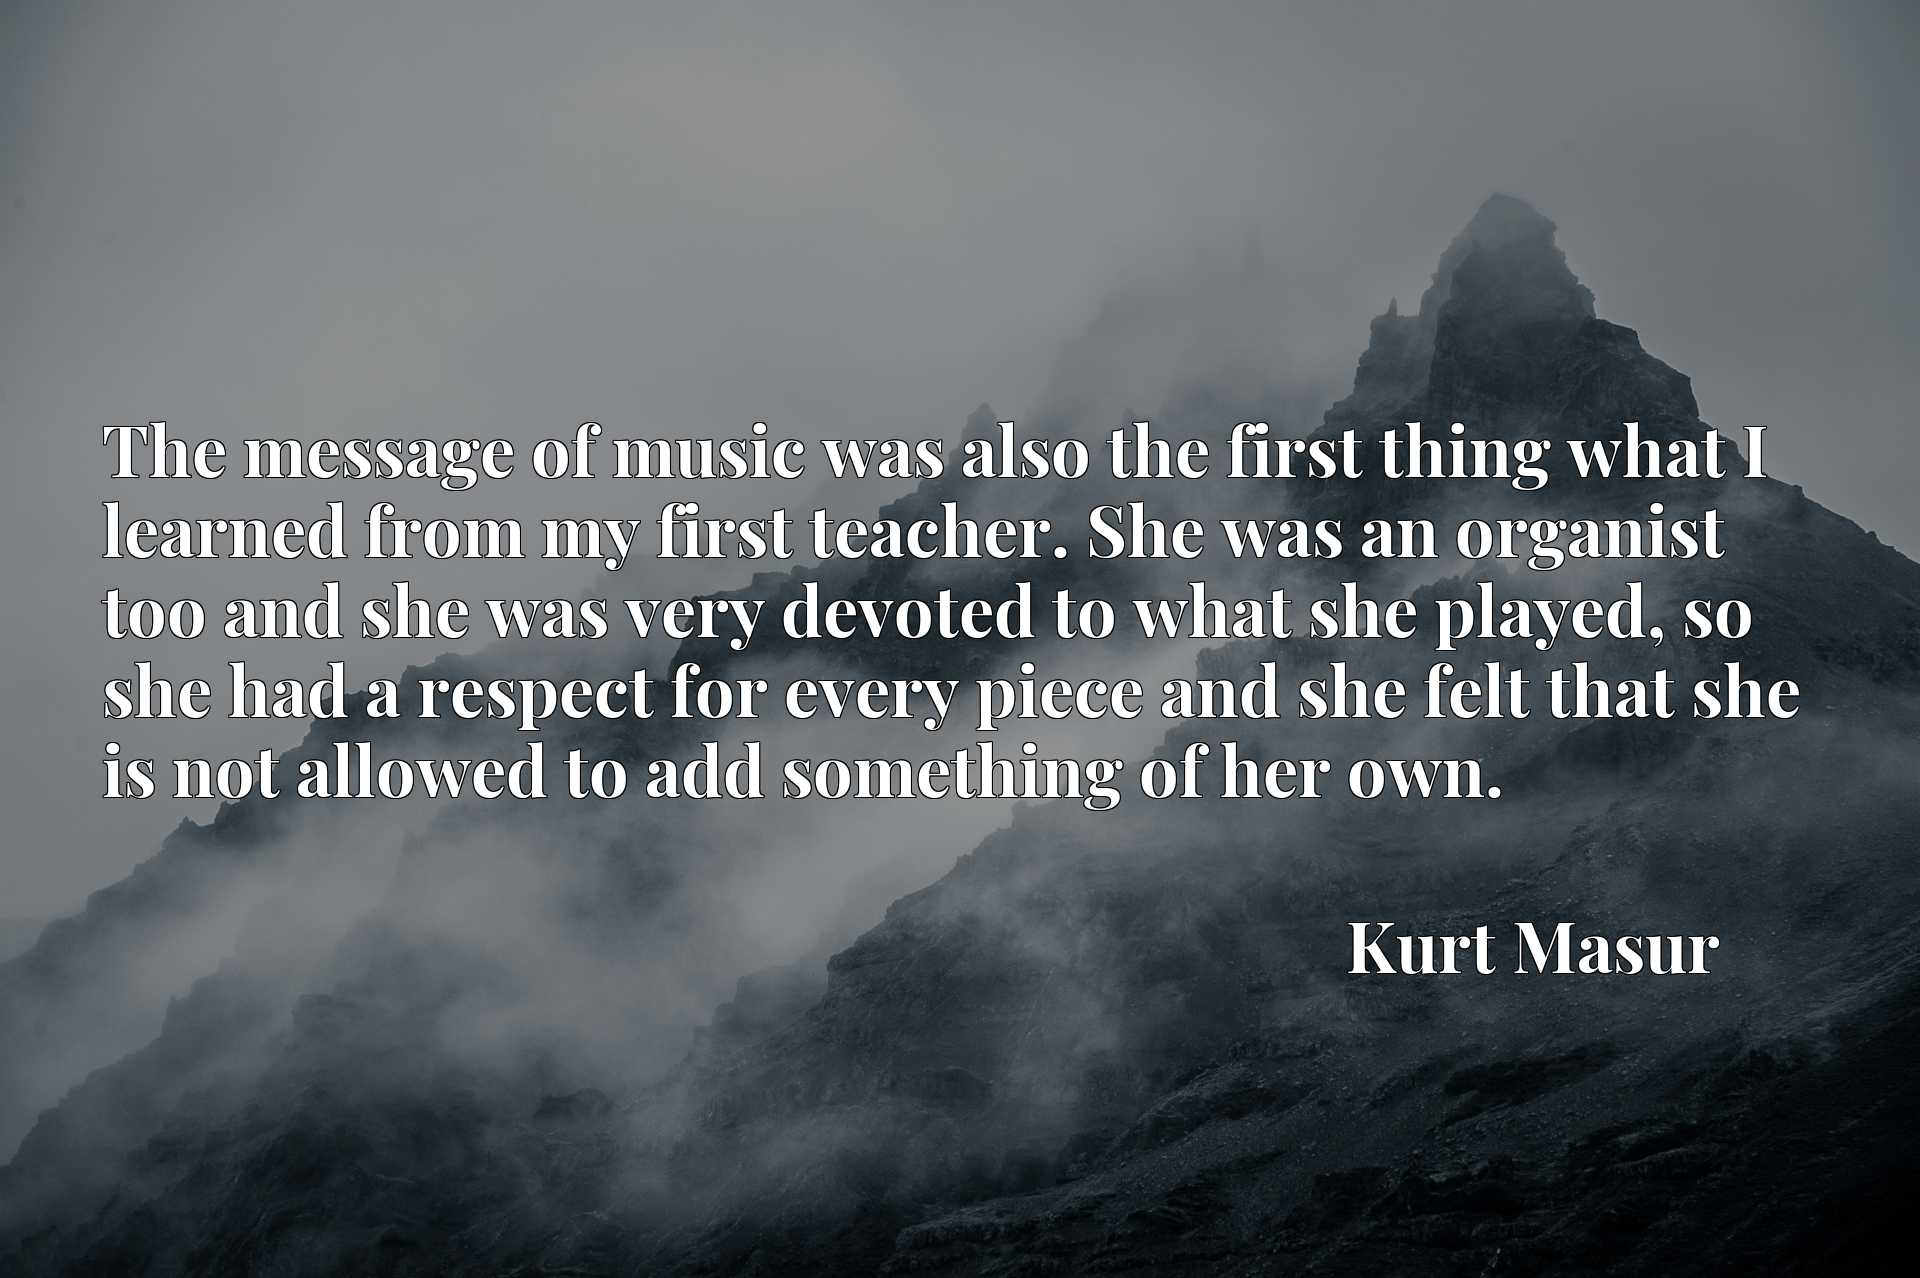 The message of music was also the first thing what I learned from my first teacher. She was an organist too and she was very devoted to what she played, so she had a respect for every piece and she felt that she is not allowed to add something of her own.